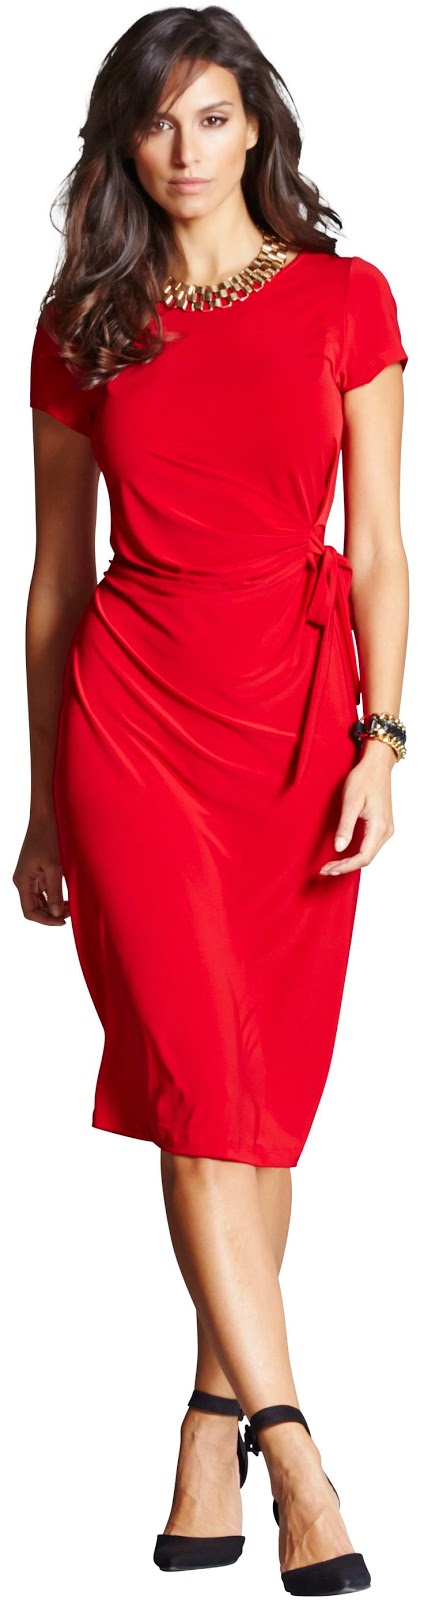 Women-Plus-Size-Dress-1